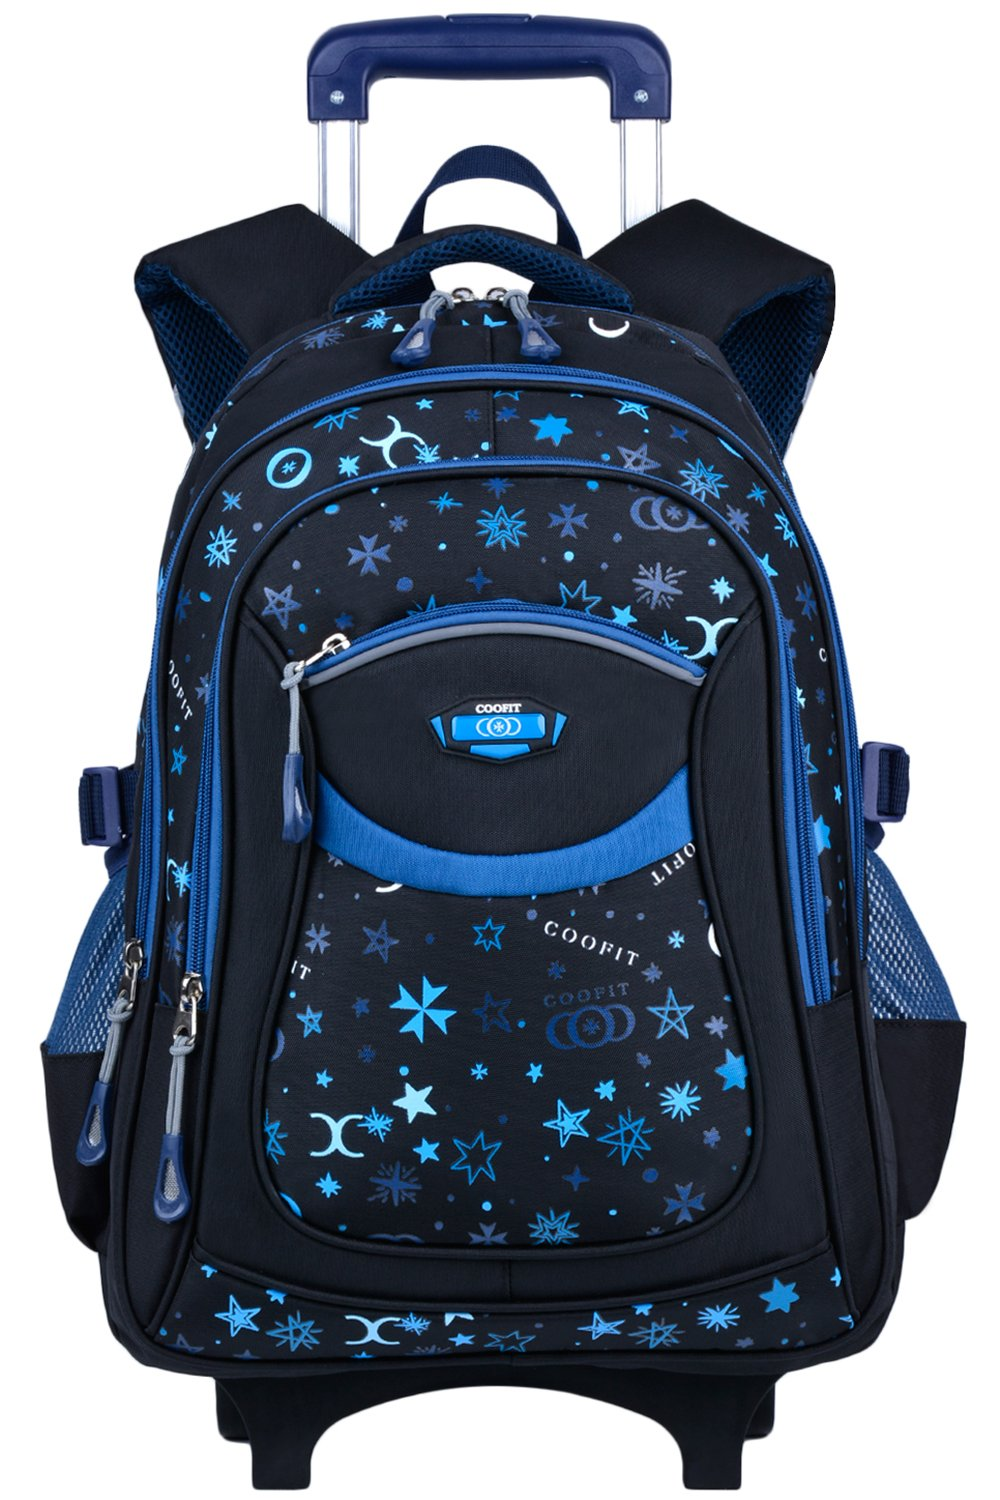 Rolling Backpack, Coofit Wheeled Backpack School Kids Rolling Backpack With Wheels kids luggage (Coofit Originally Design Blue)